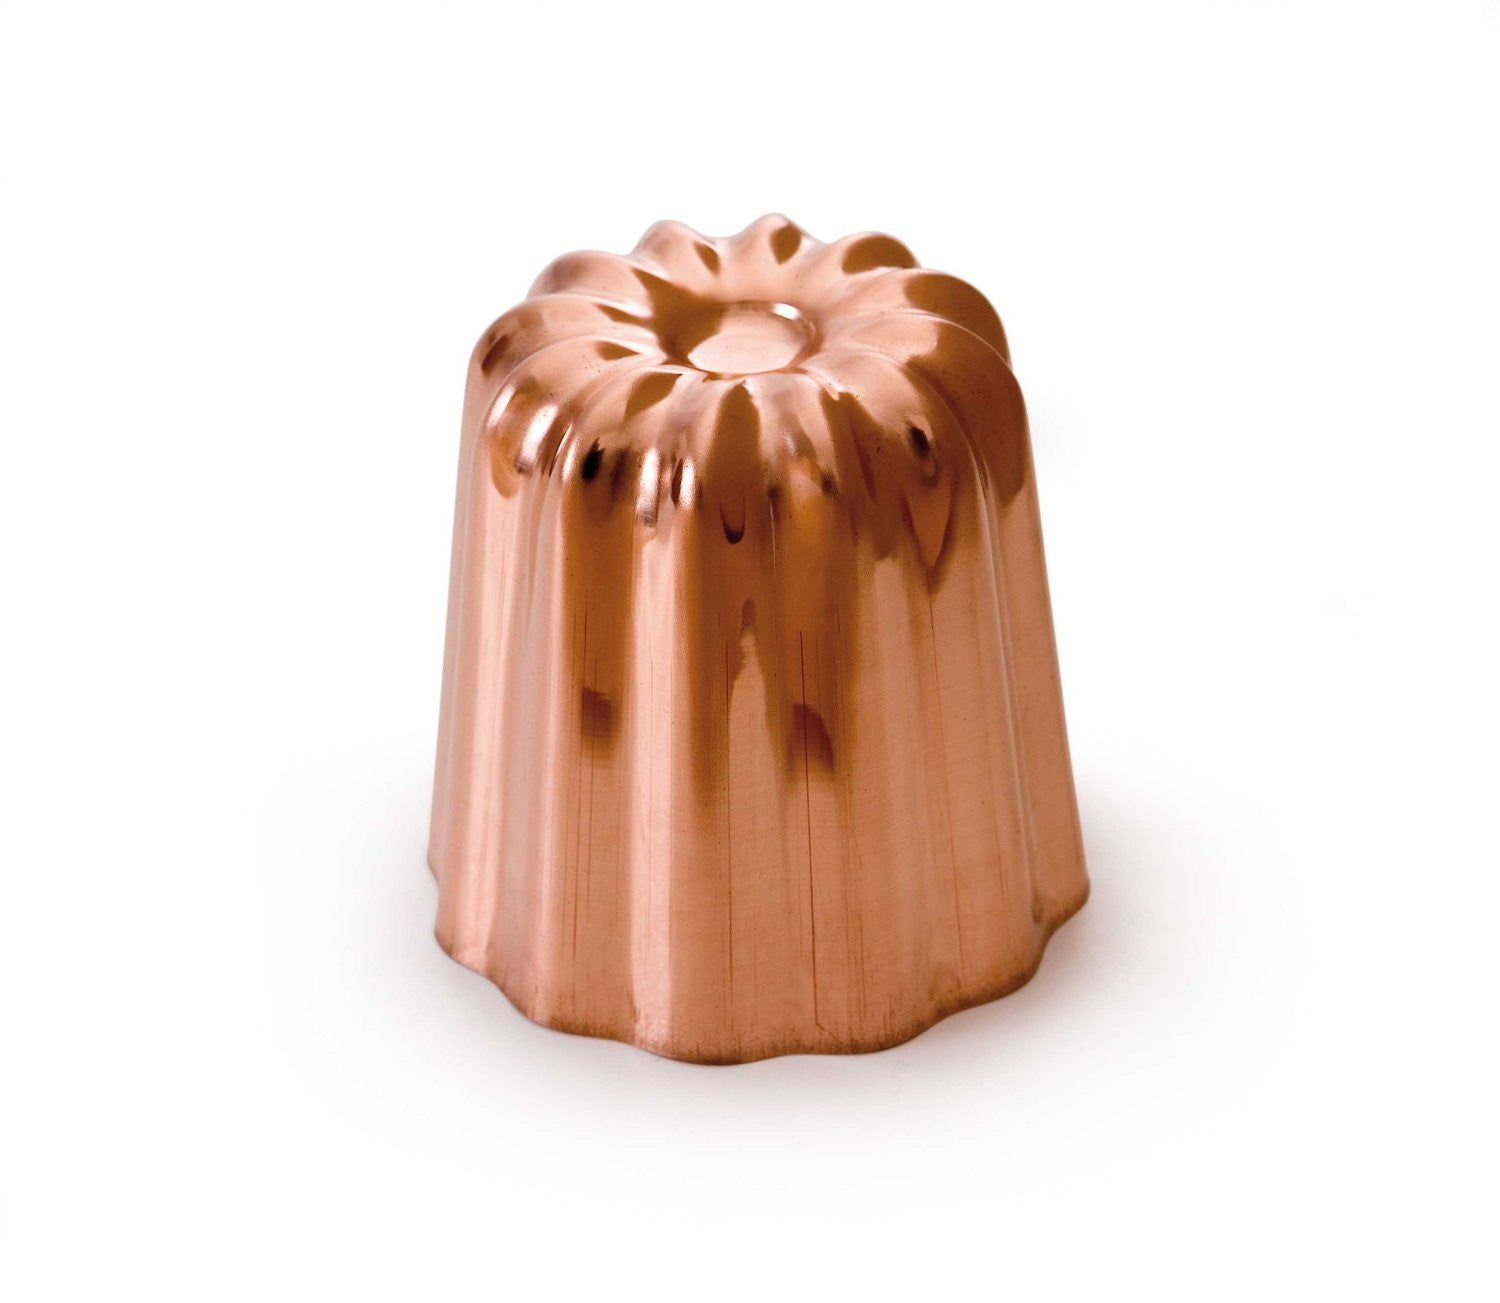 Copper Canele Mold by Mauviel France